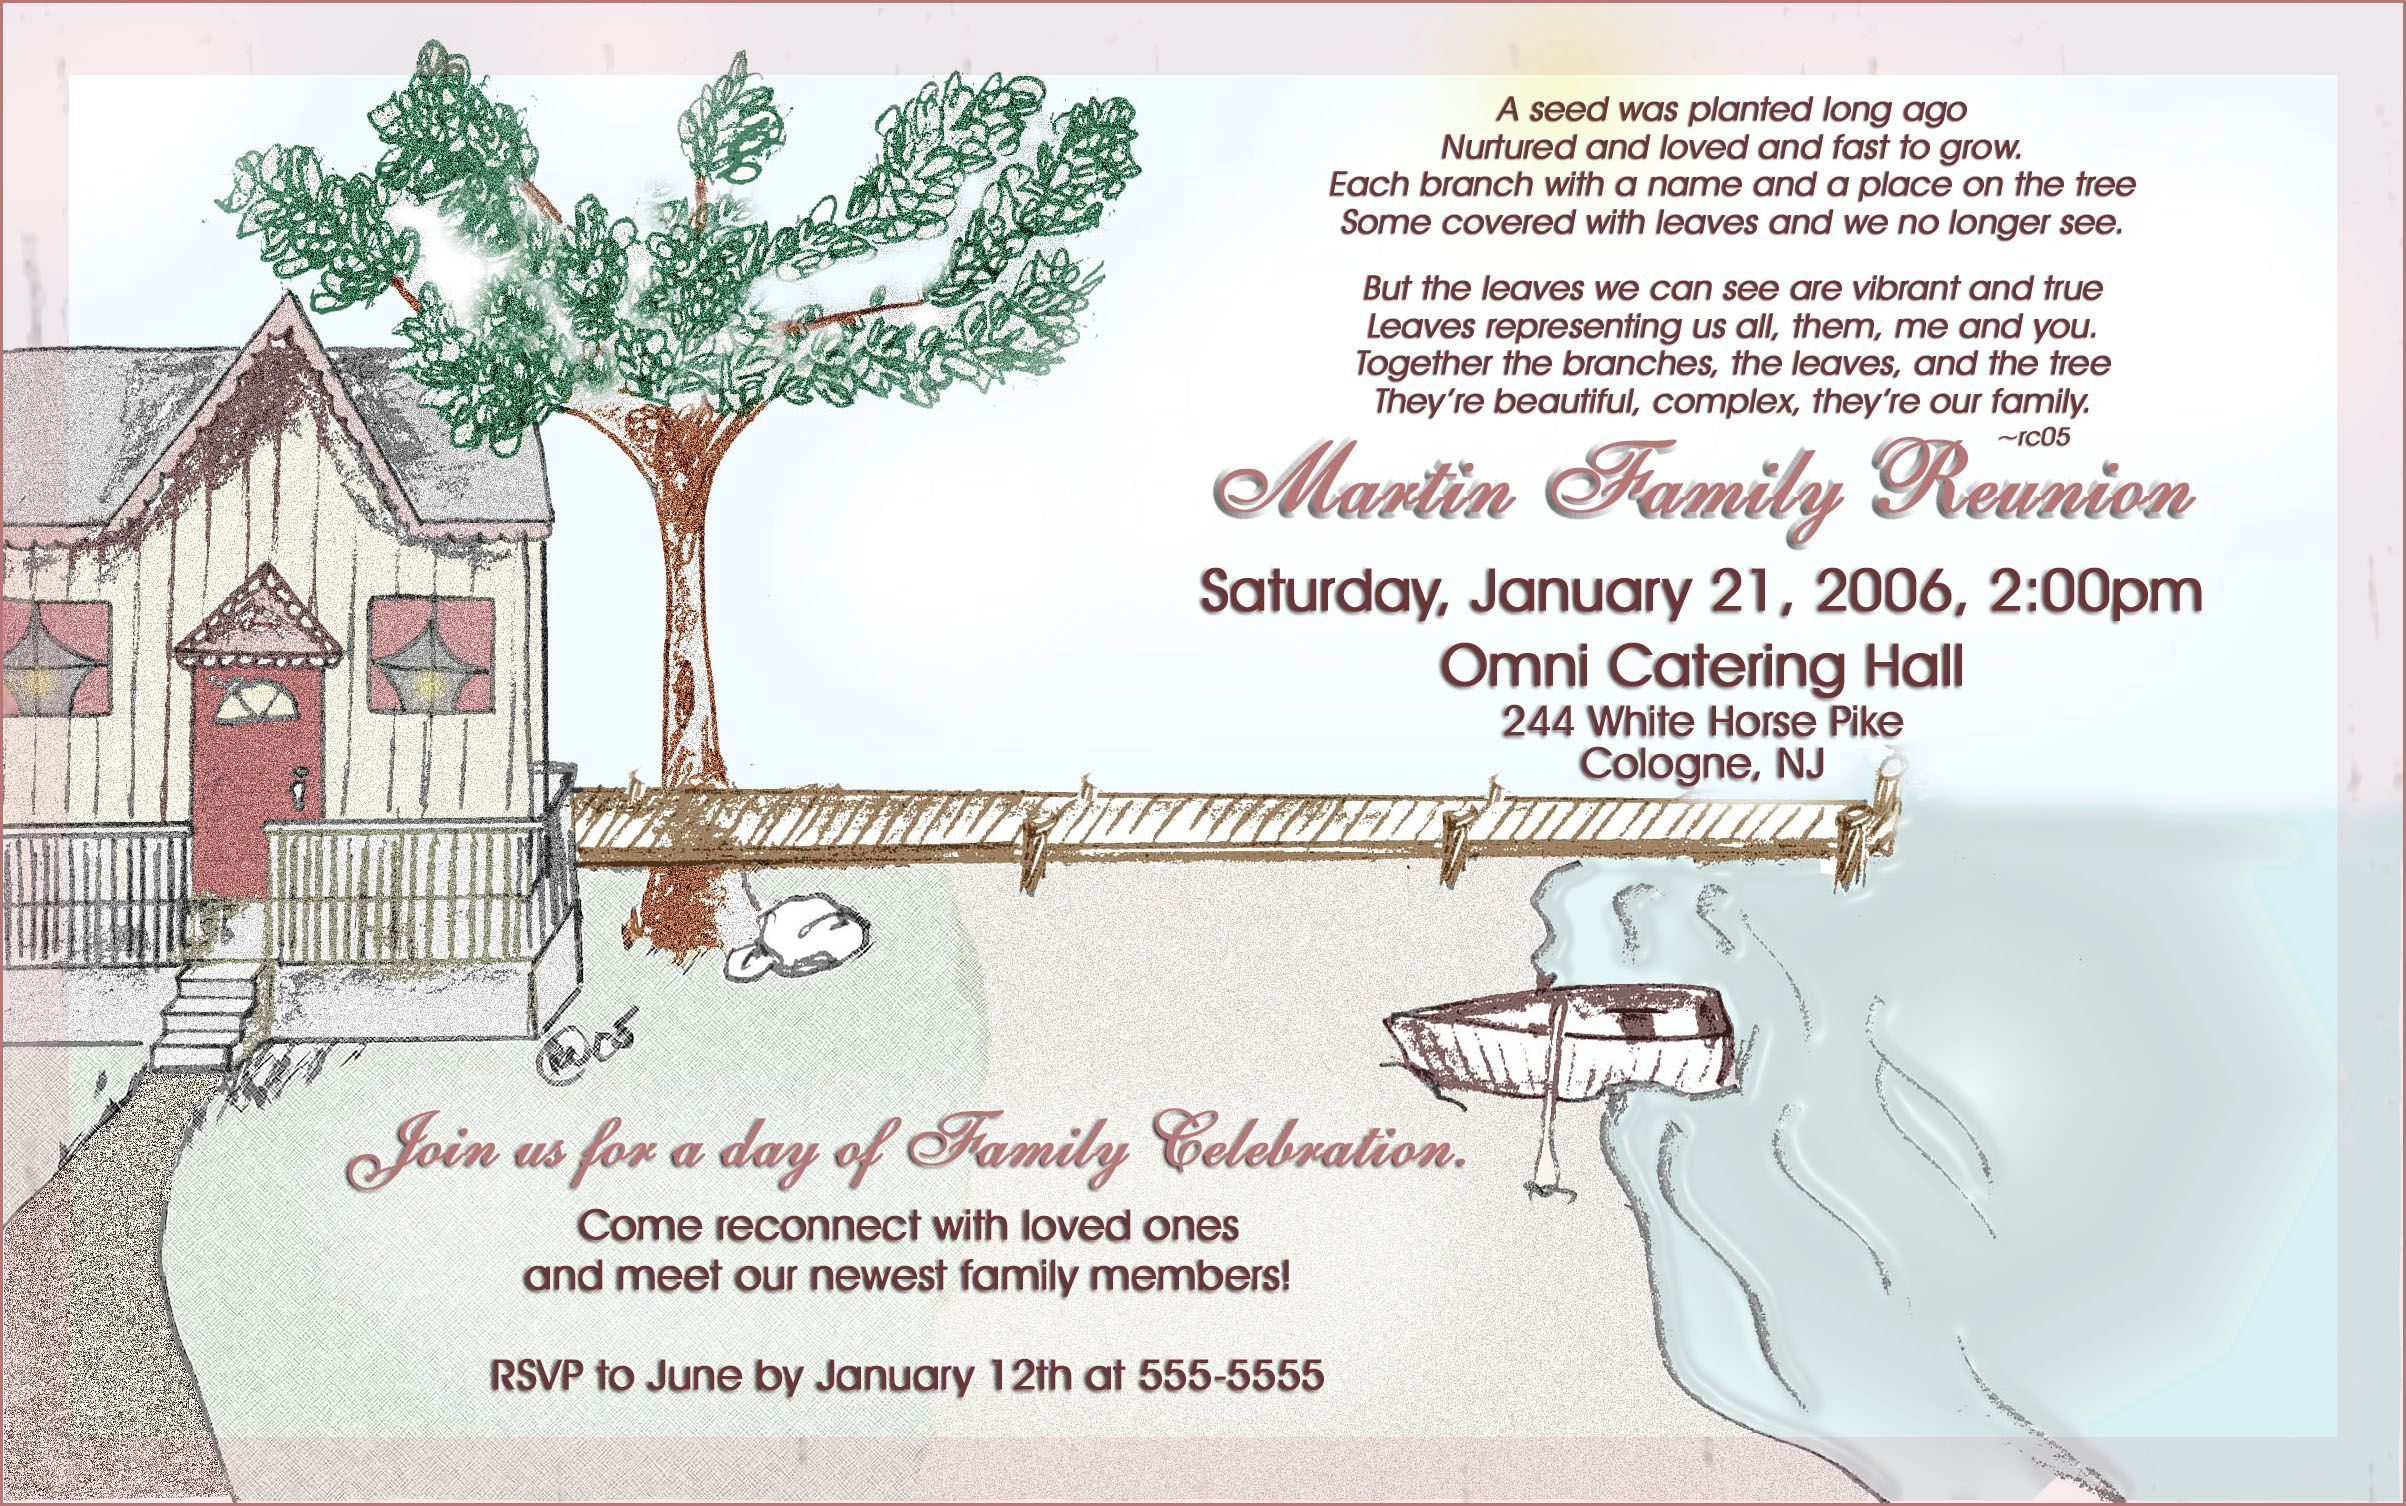 003 Unusual Family Reunion Flyer Template Free Inspiration  Downloadable Printable InvitationFull